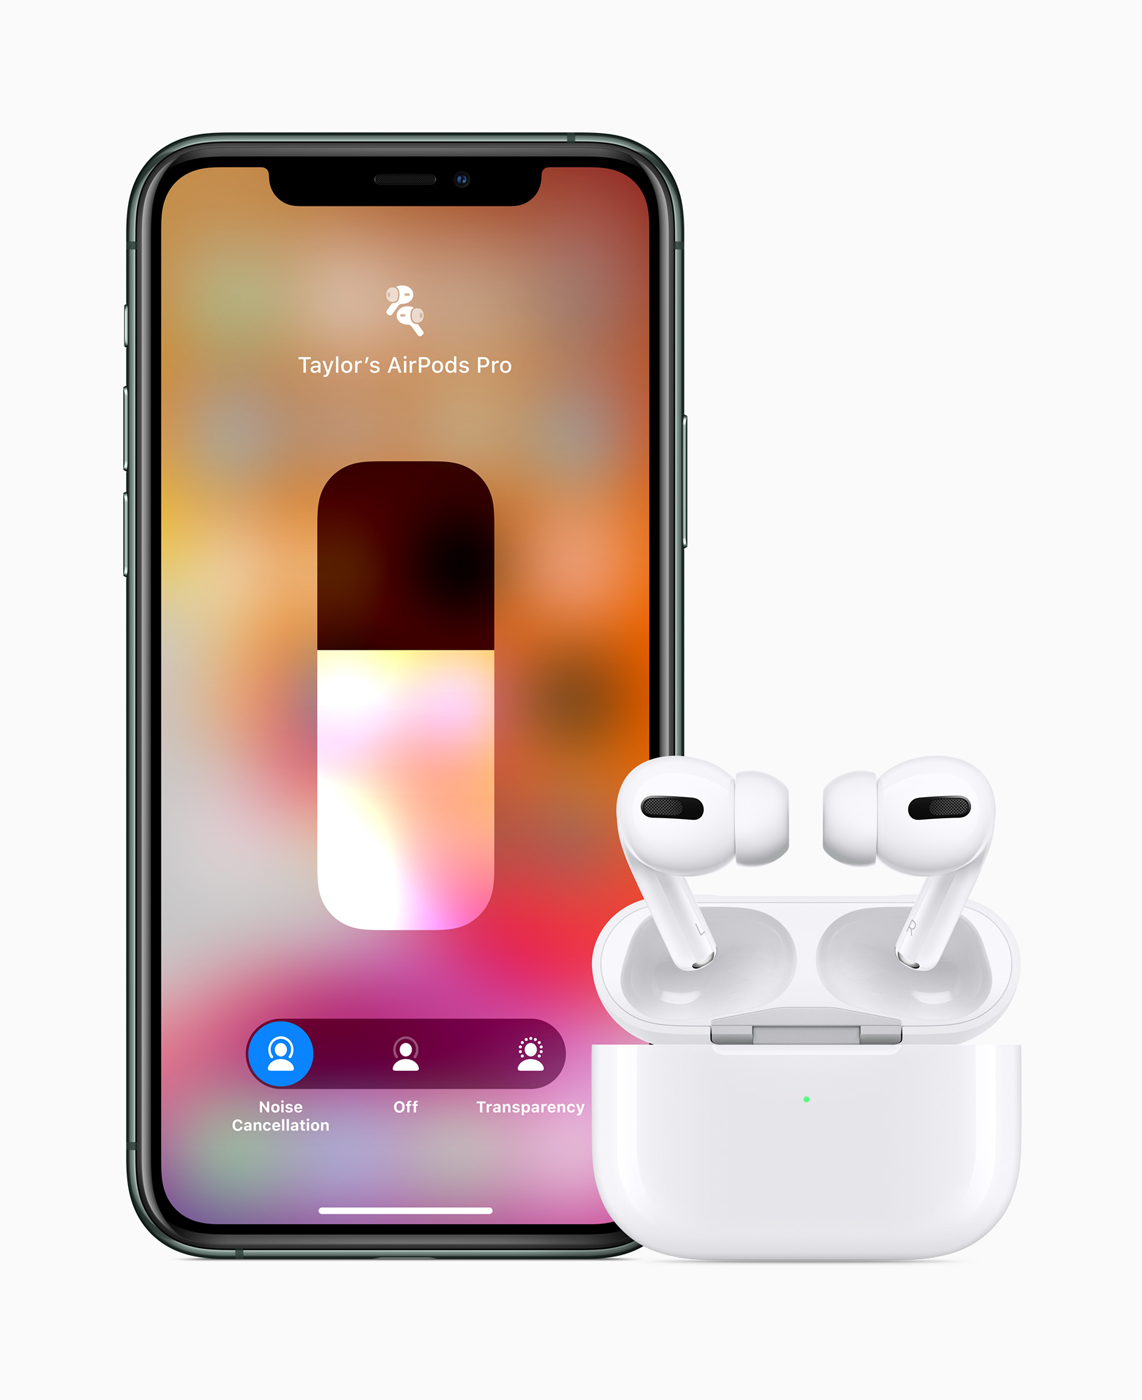 Apple to Release New AirPods Pro Wireless Earbuds on October 30